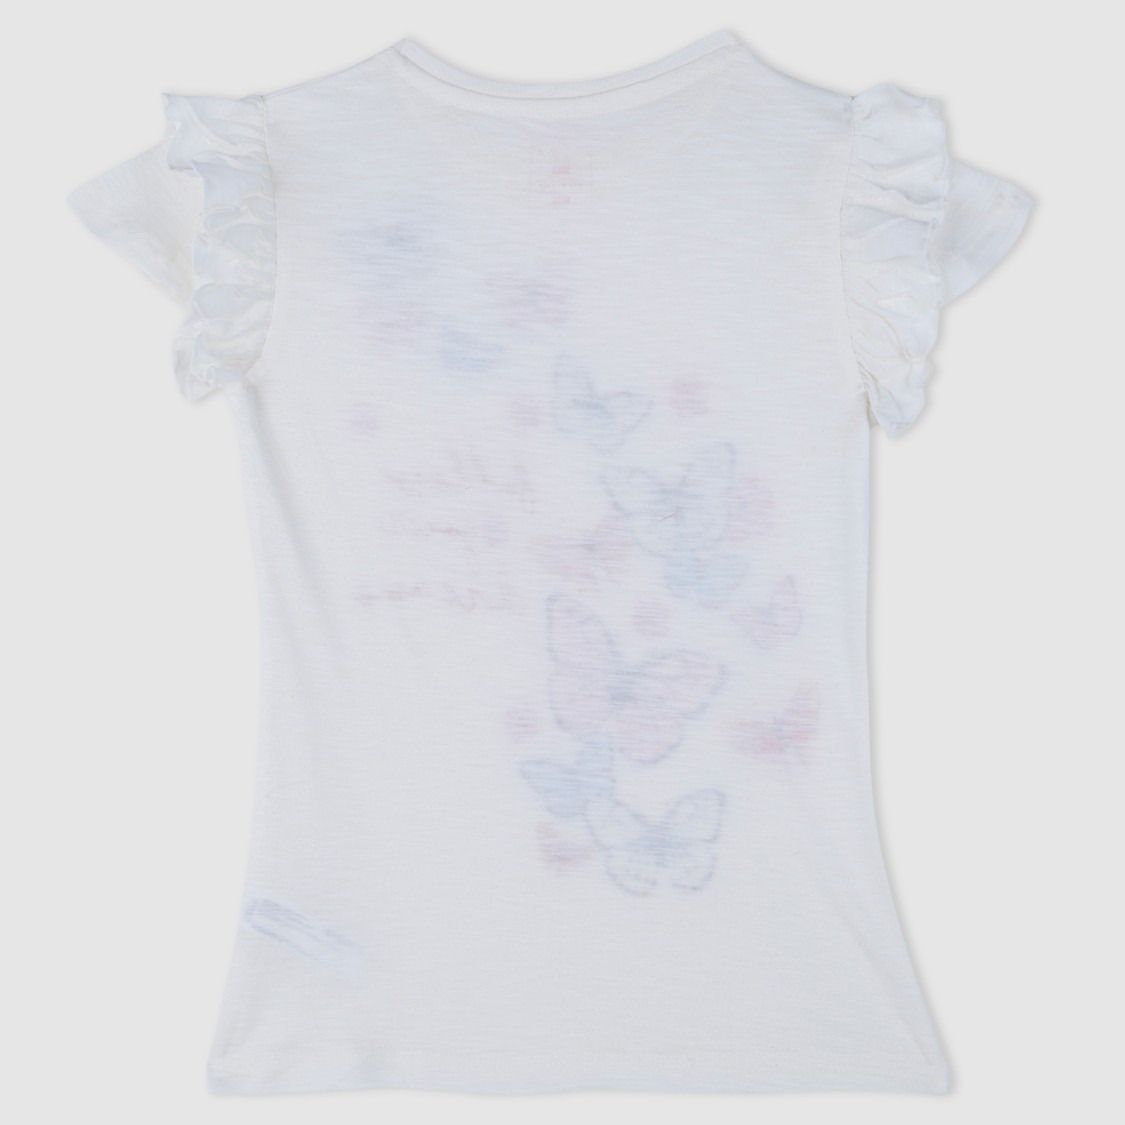 Butterfly Print Short Sleeves T-Shirt with Frill Detailing